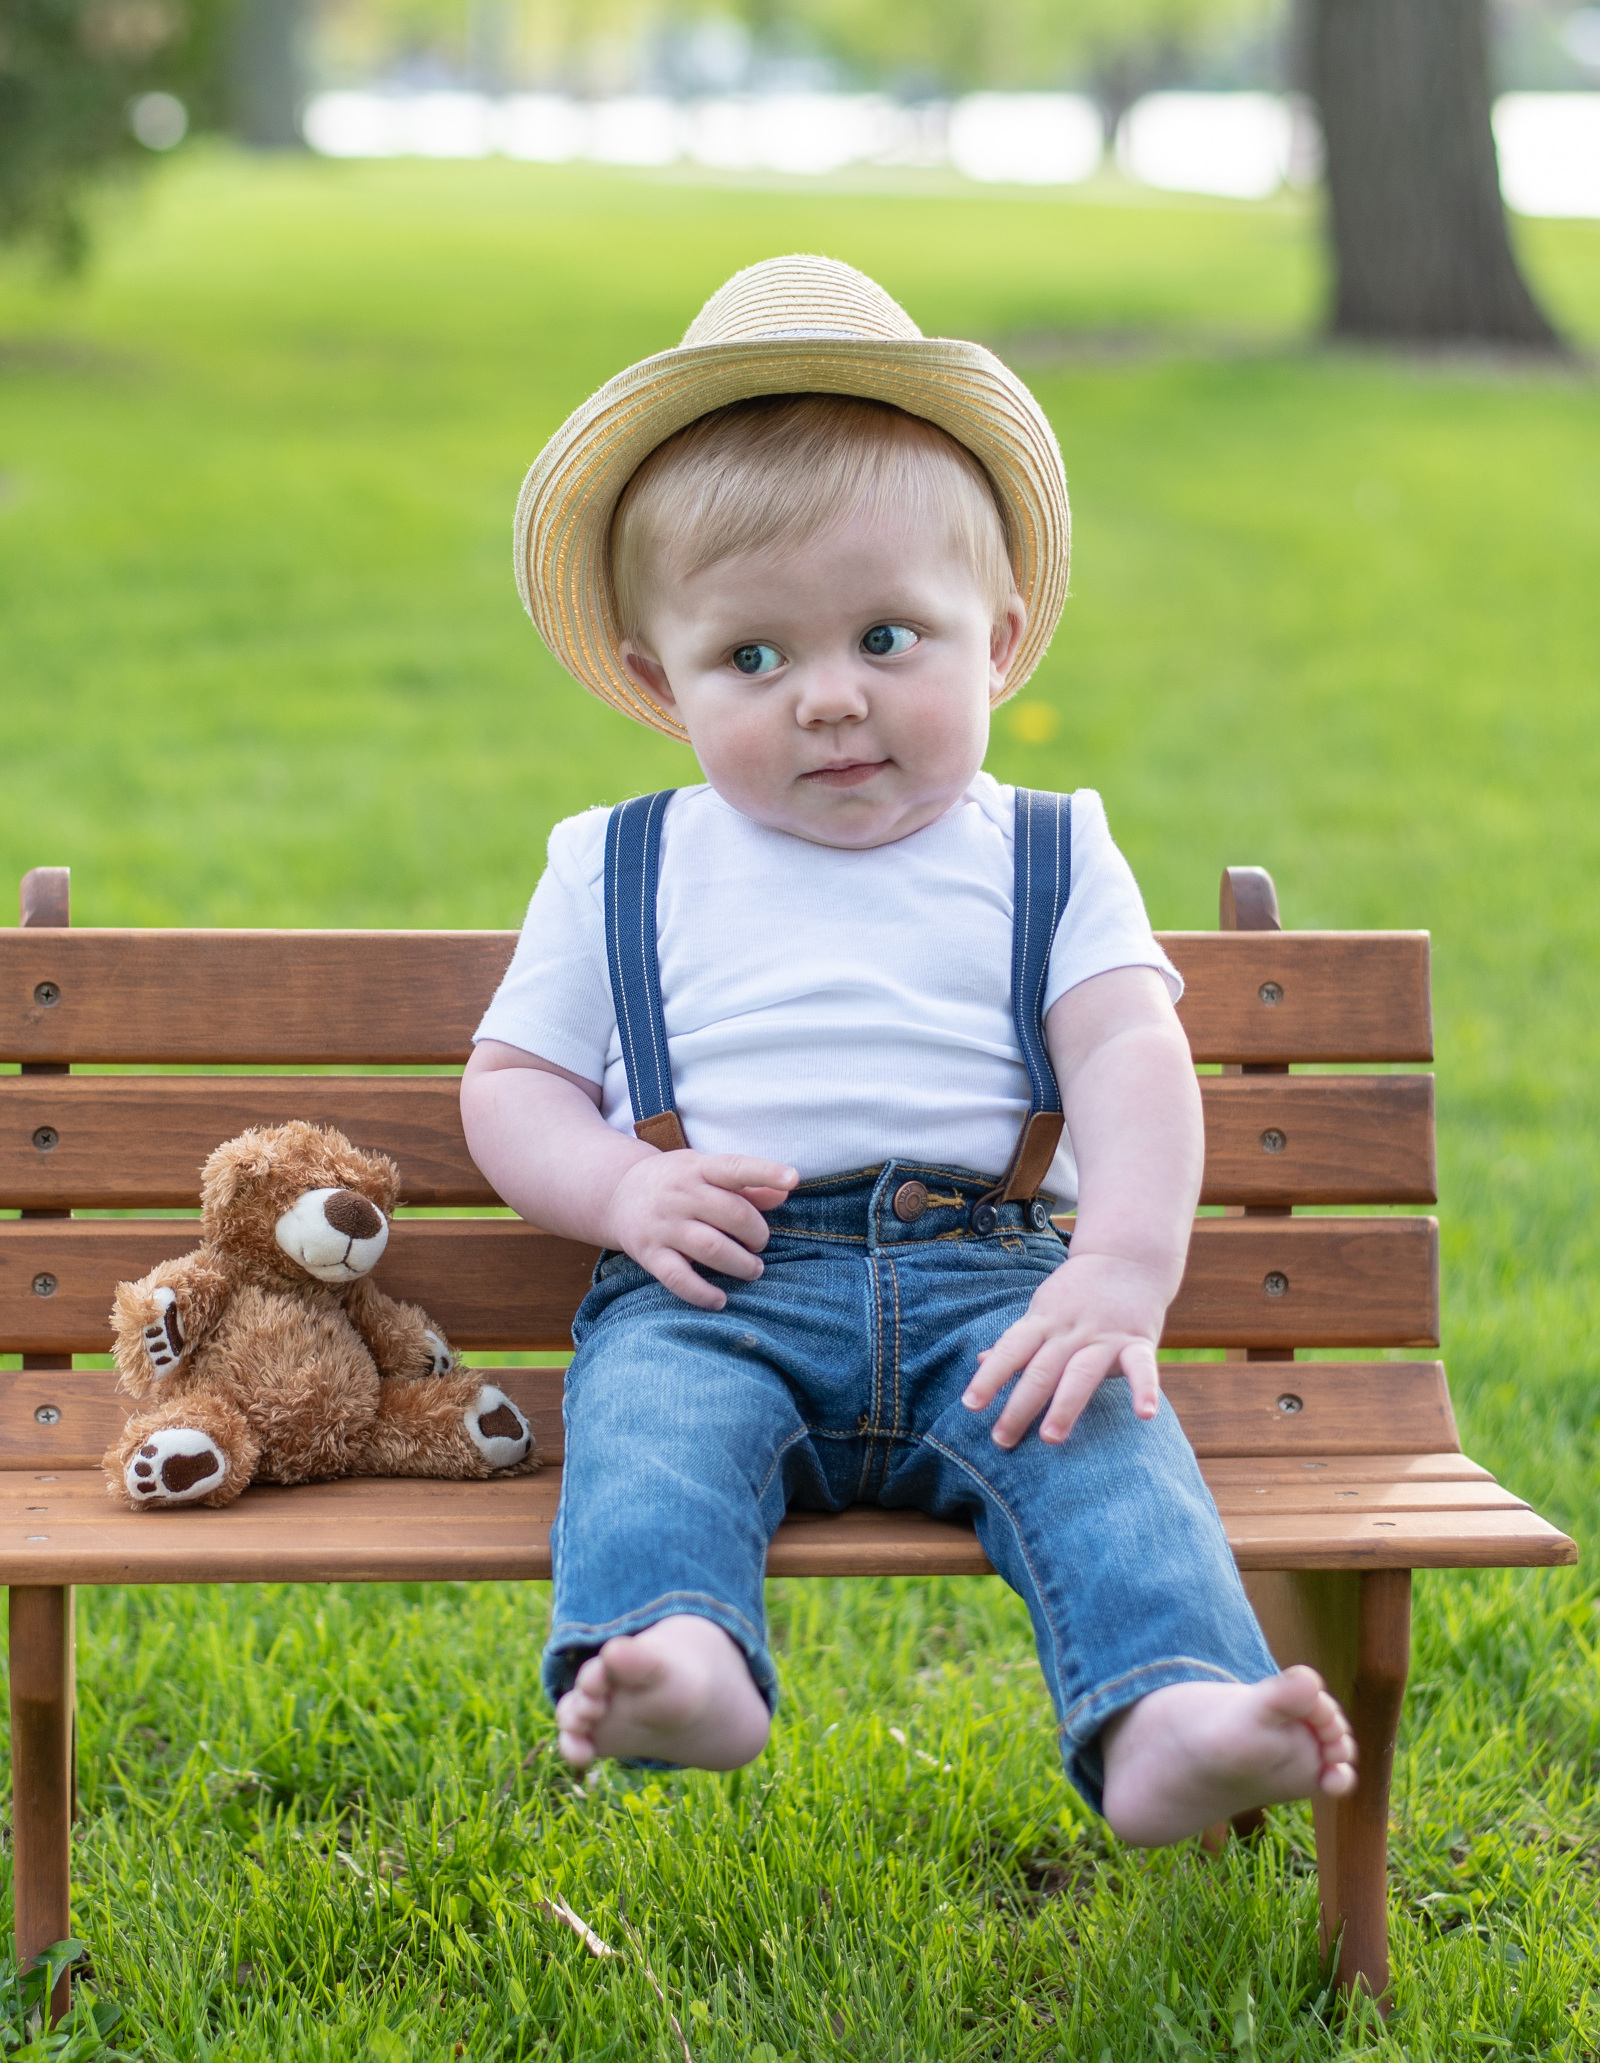 baby milestones 6 months old boy on bench with bear